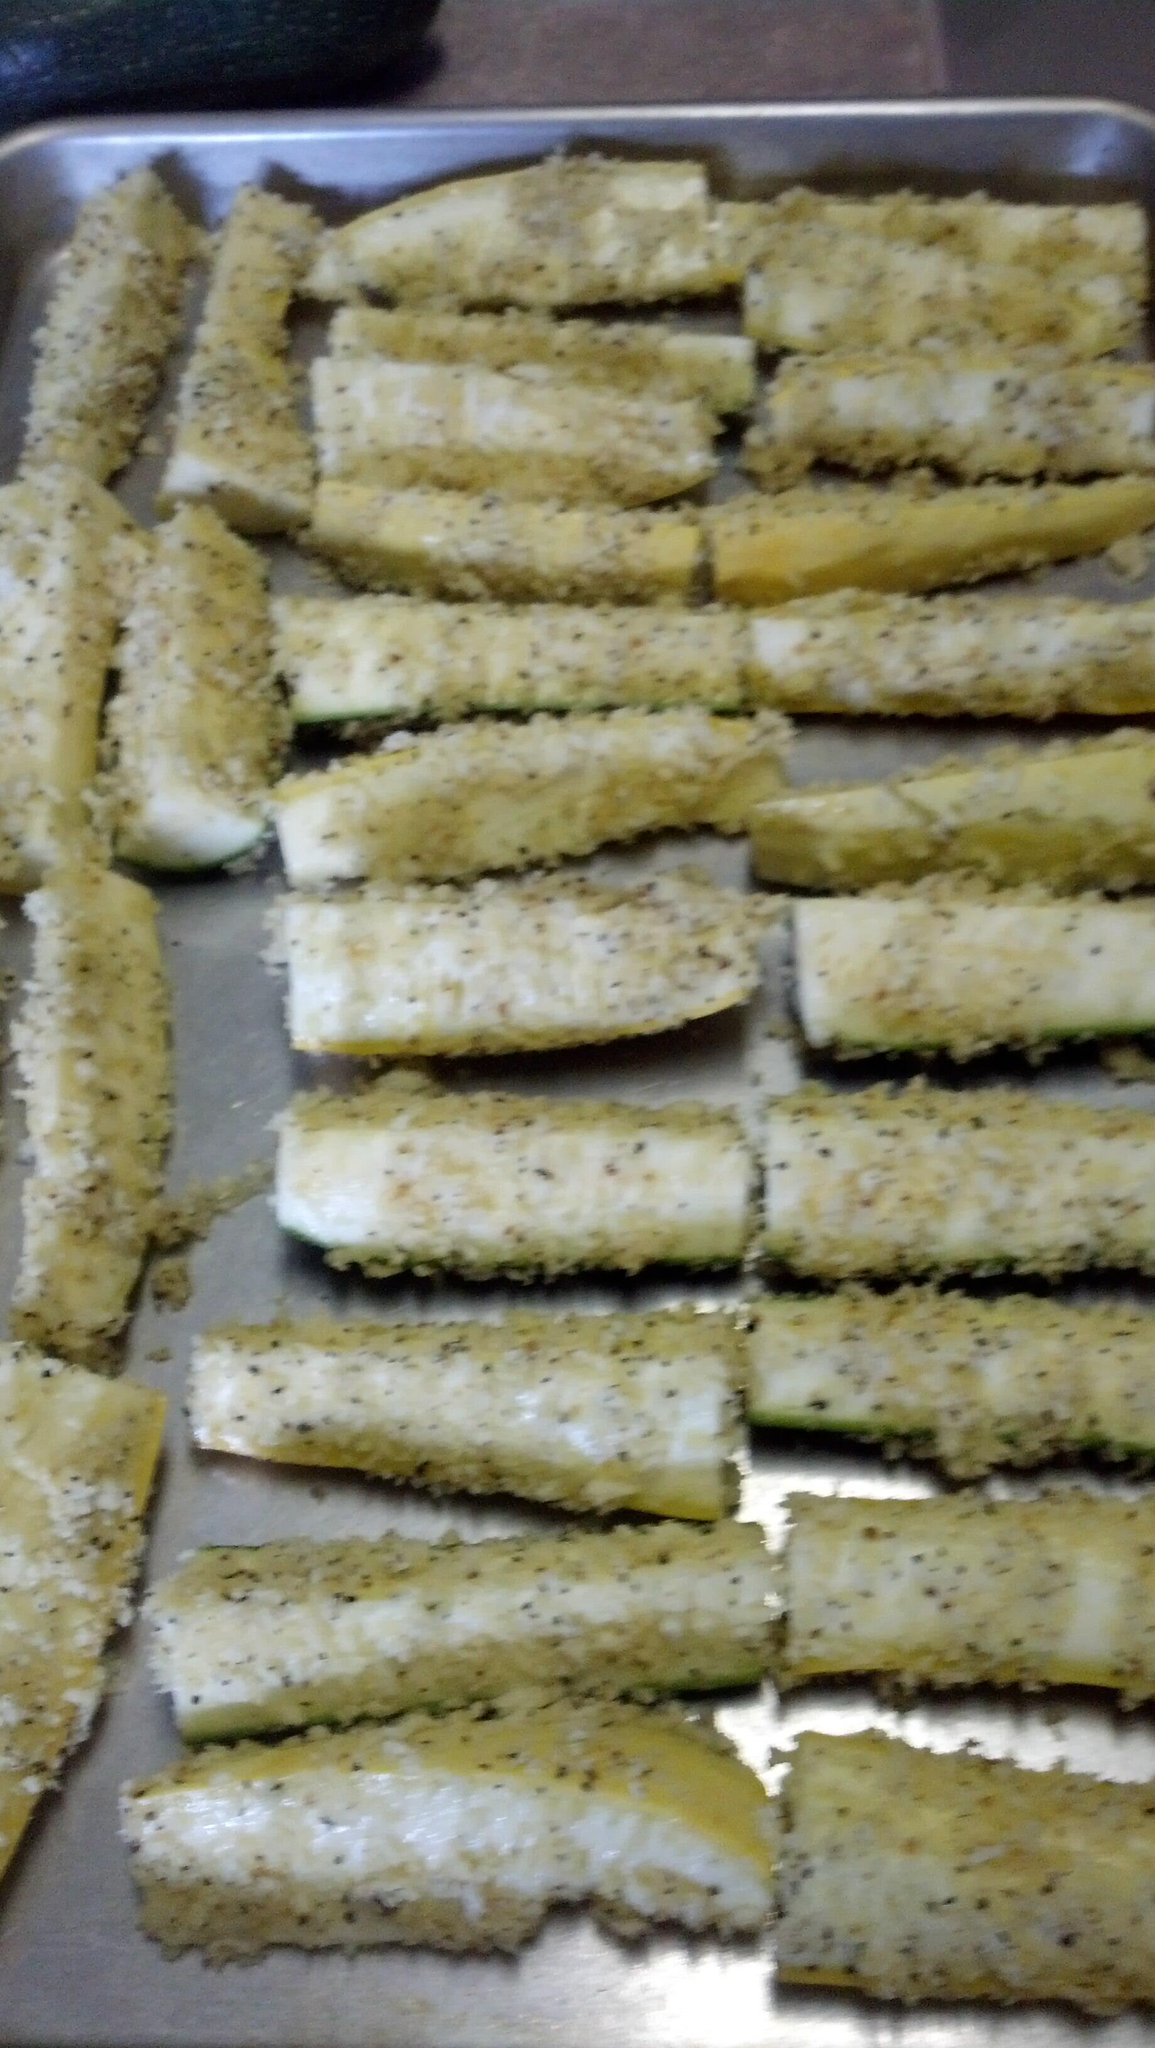 Lemon Pepper Panko Summer squash & zucchini ready 2B baked. Plus Italian sausage for dinner. Going 2B awesome I hope http://t.co/b99IktmPJU